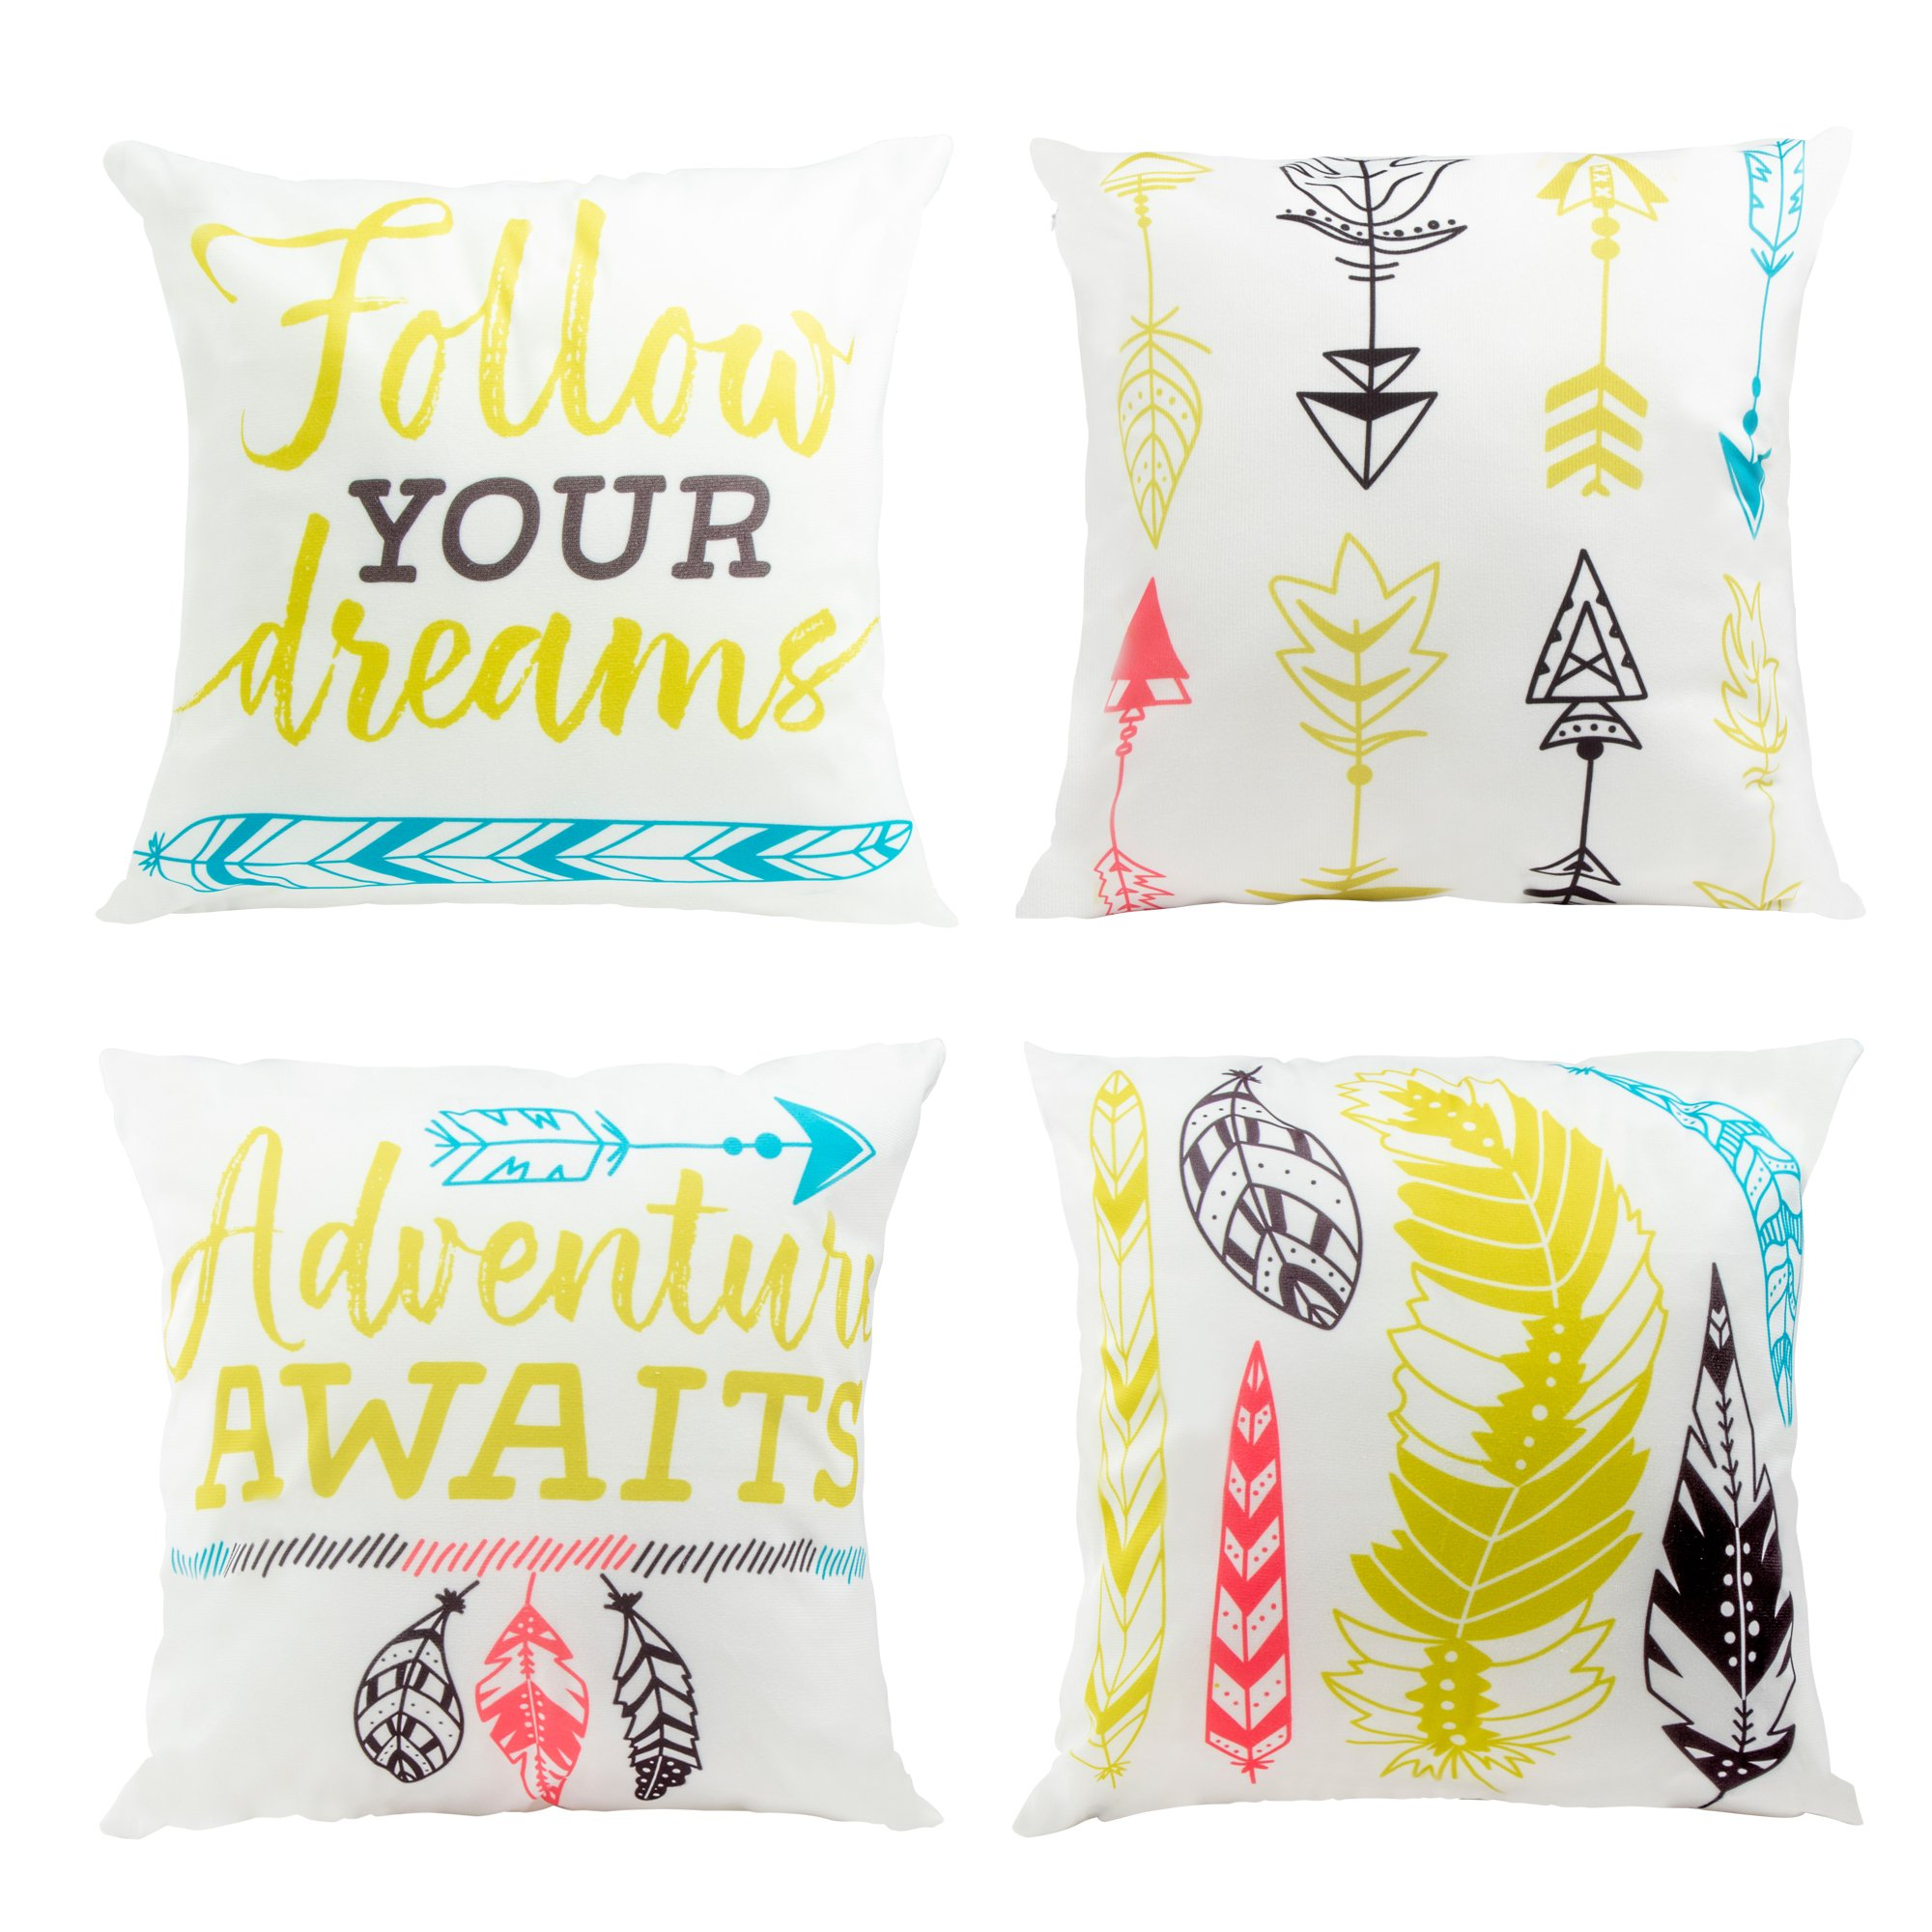 Juvale Throw Pillow Covers - 4-Pack Colorful Decorative Couch Throw Pillow Cases, Bright Bohemien Feather Arrow Print Typography Design, Modern Home Decor Cushion Covers, Fits 18 x 18 Pillows